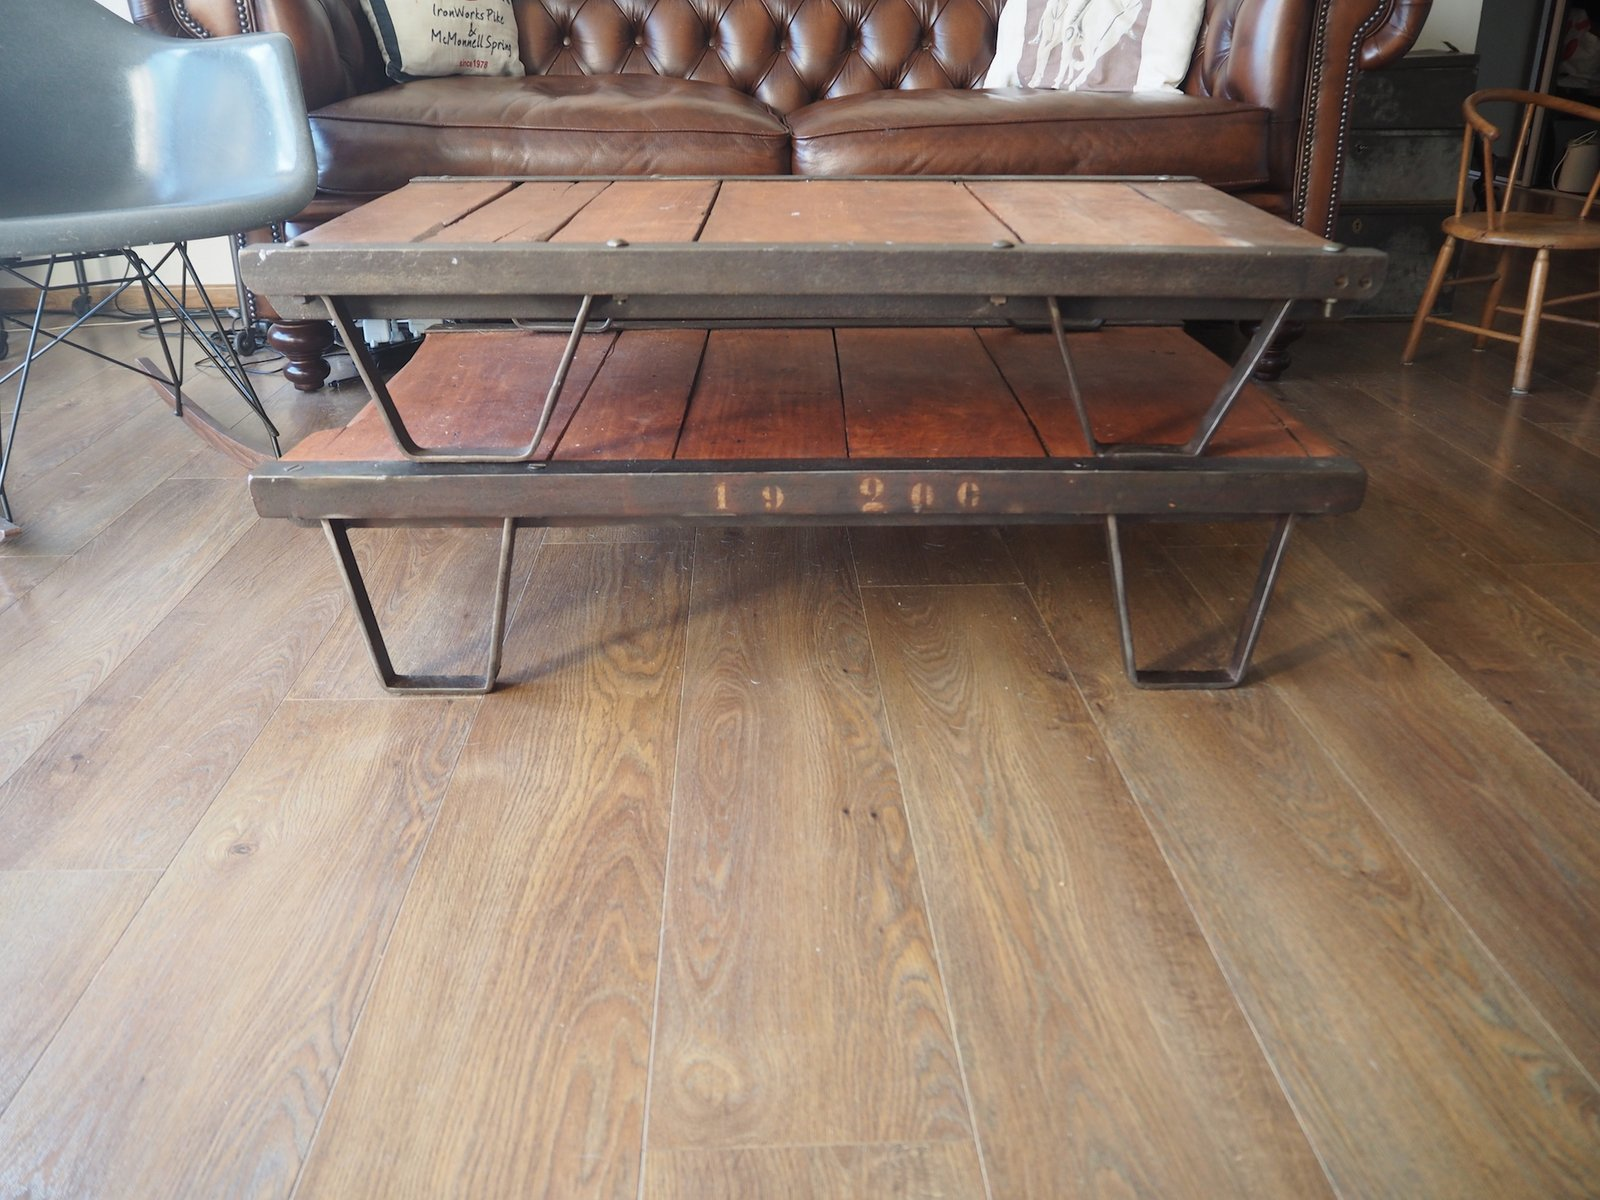 table basse industrielle palette france 1950s en vente sur pamono. Black Bedroom Furniture Sets. Home Design Ideas